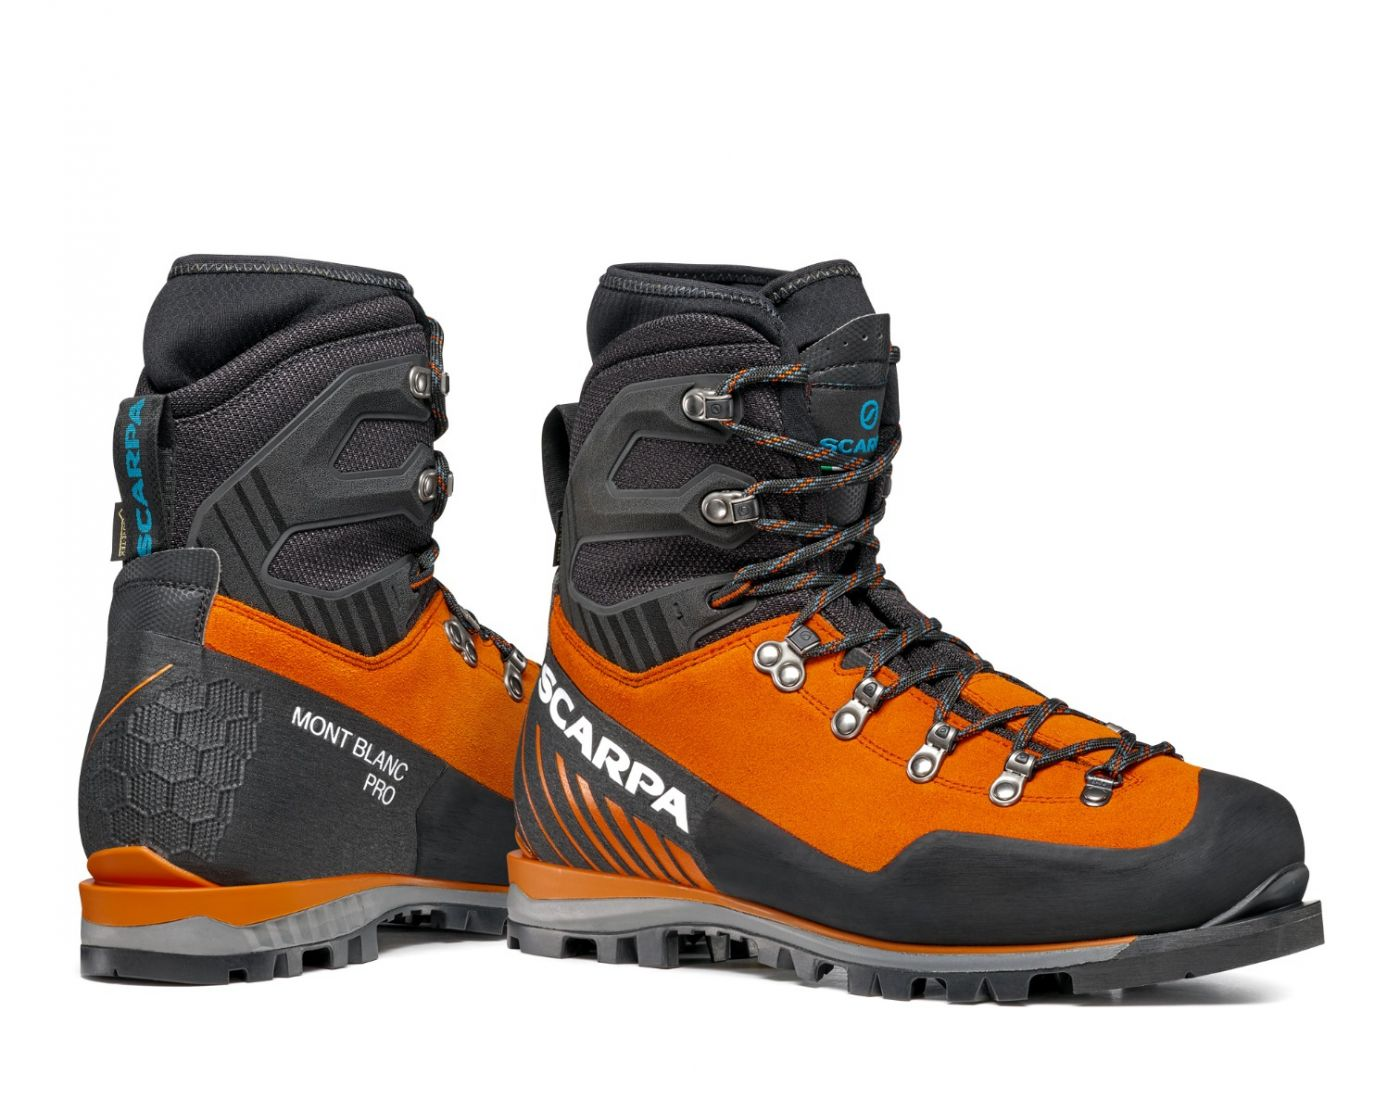 best boots for hunting sheep in the mountains